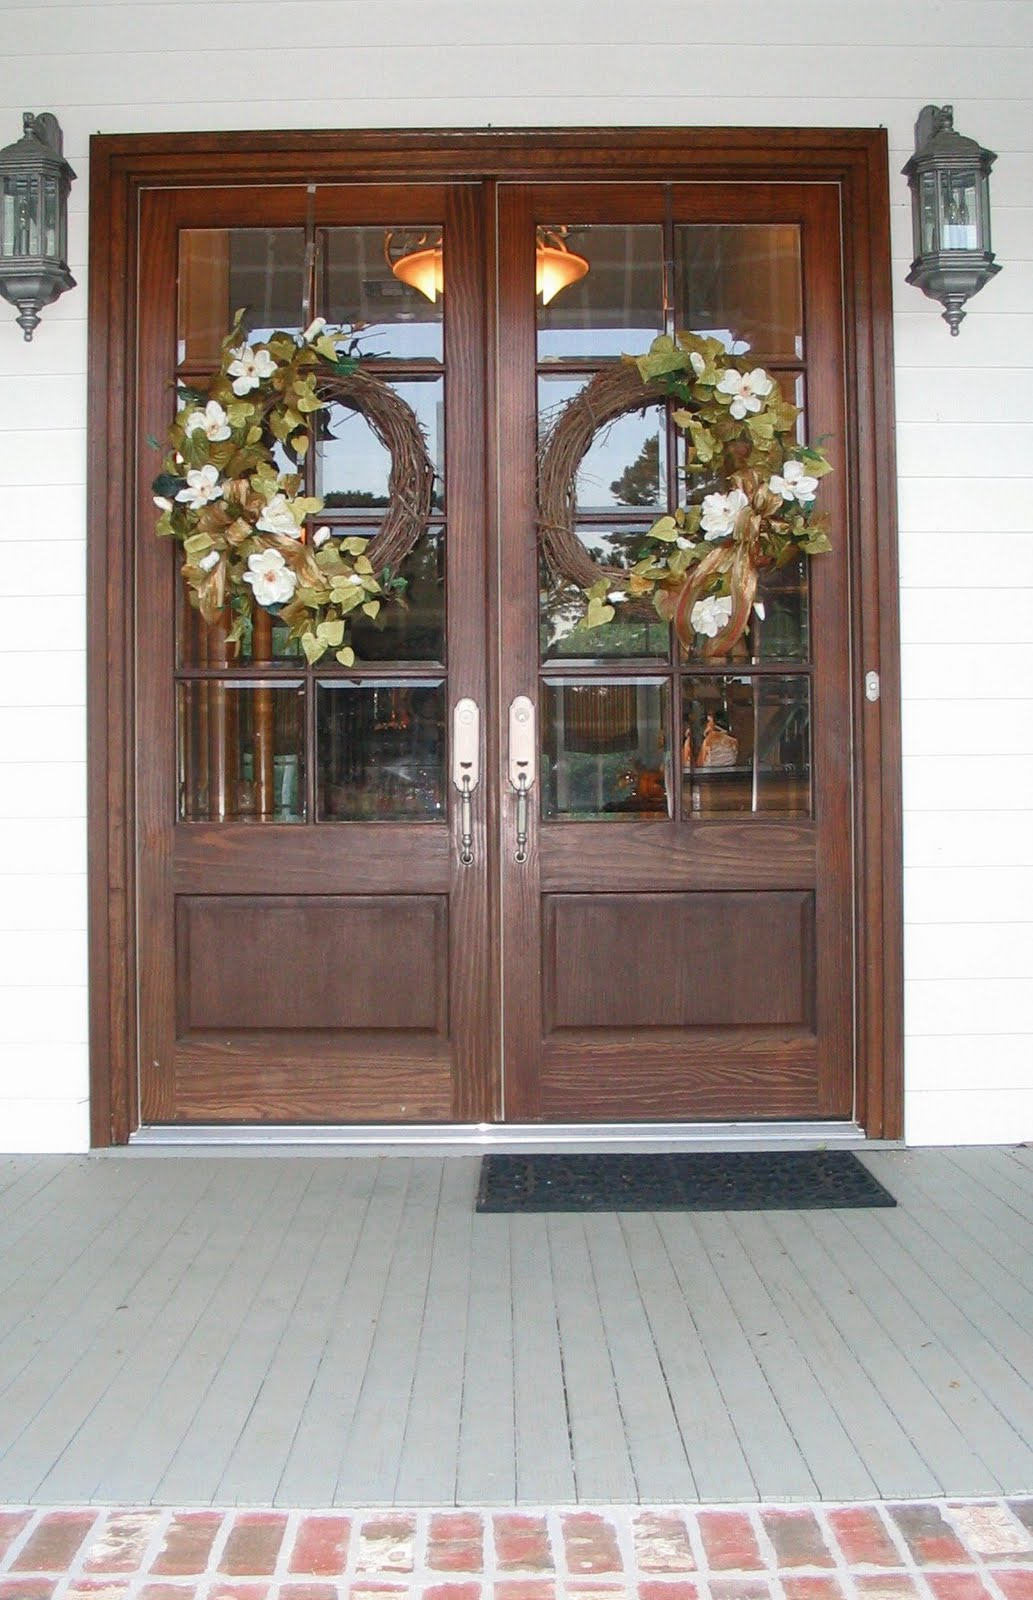 A southern belle dishes on decor my life on the front porch for Double door ideas